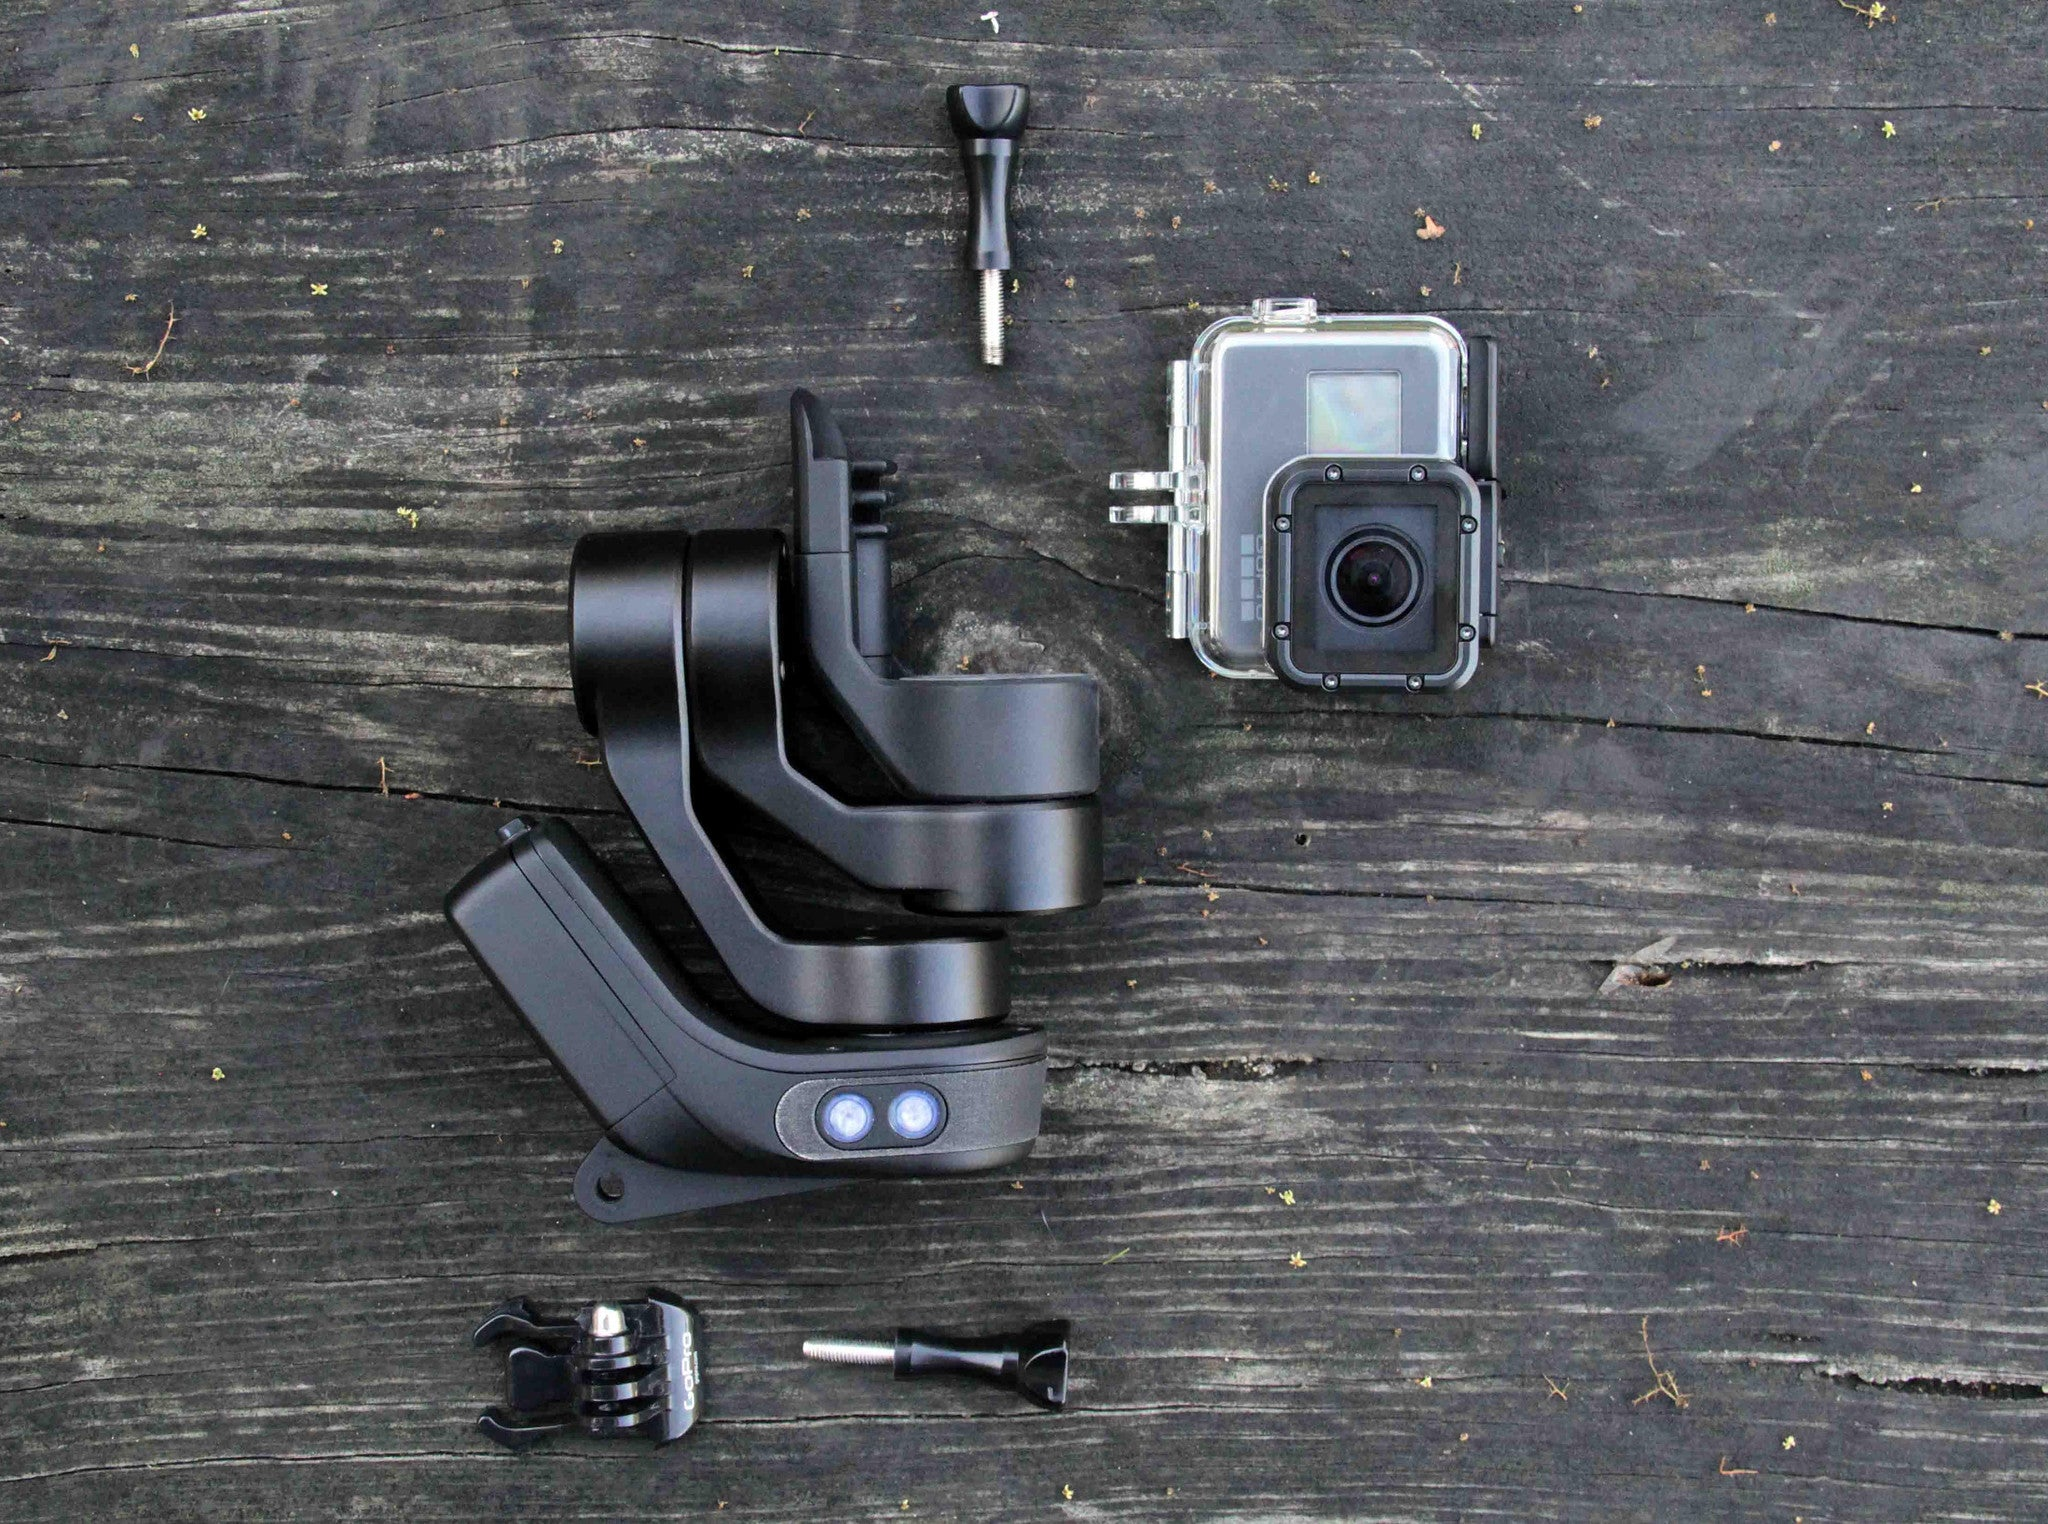 Slick GoPro Gimbal packaging, manufacturing and testing with the GoPro 5 Supersuit!